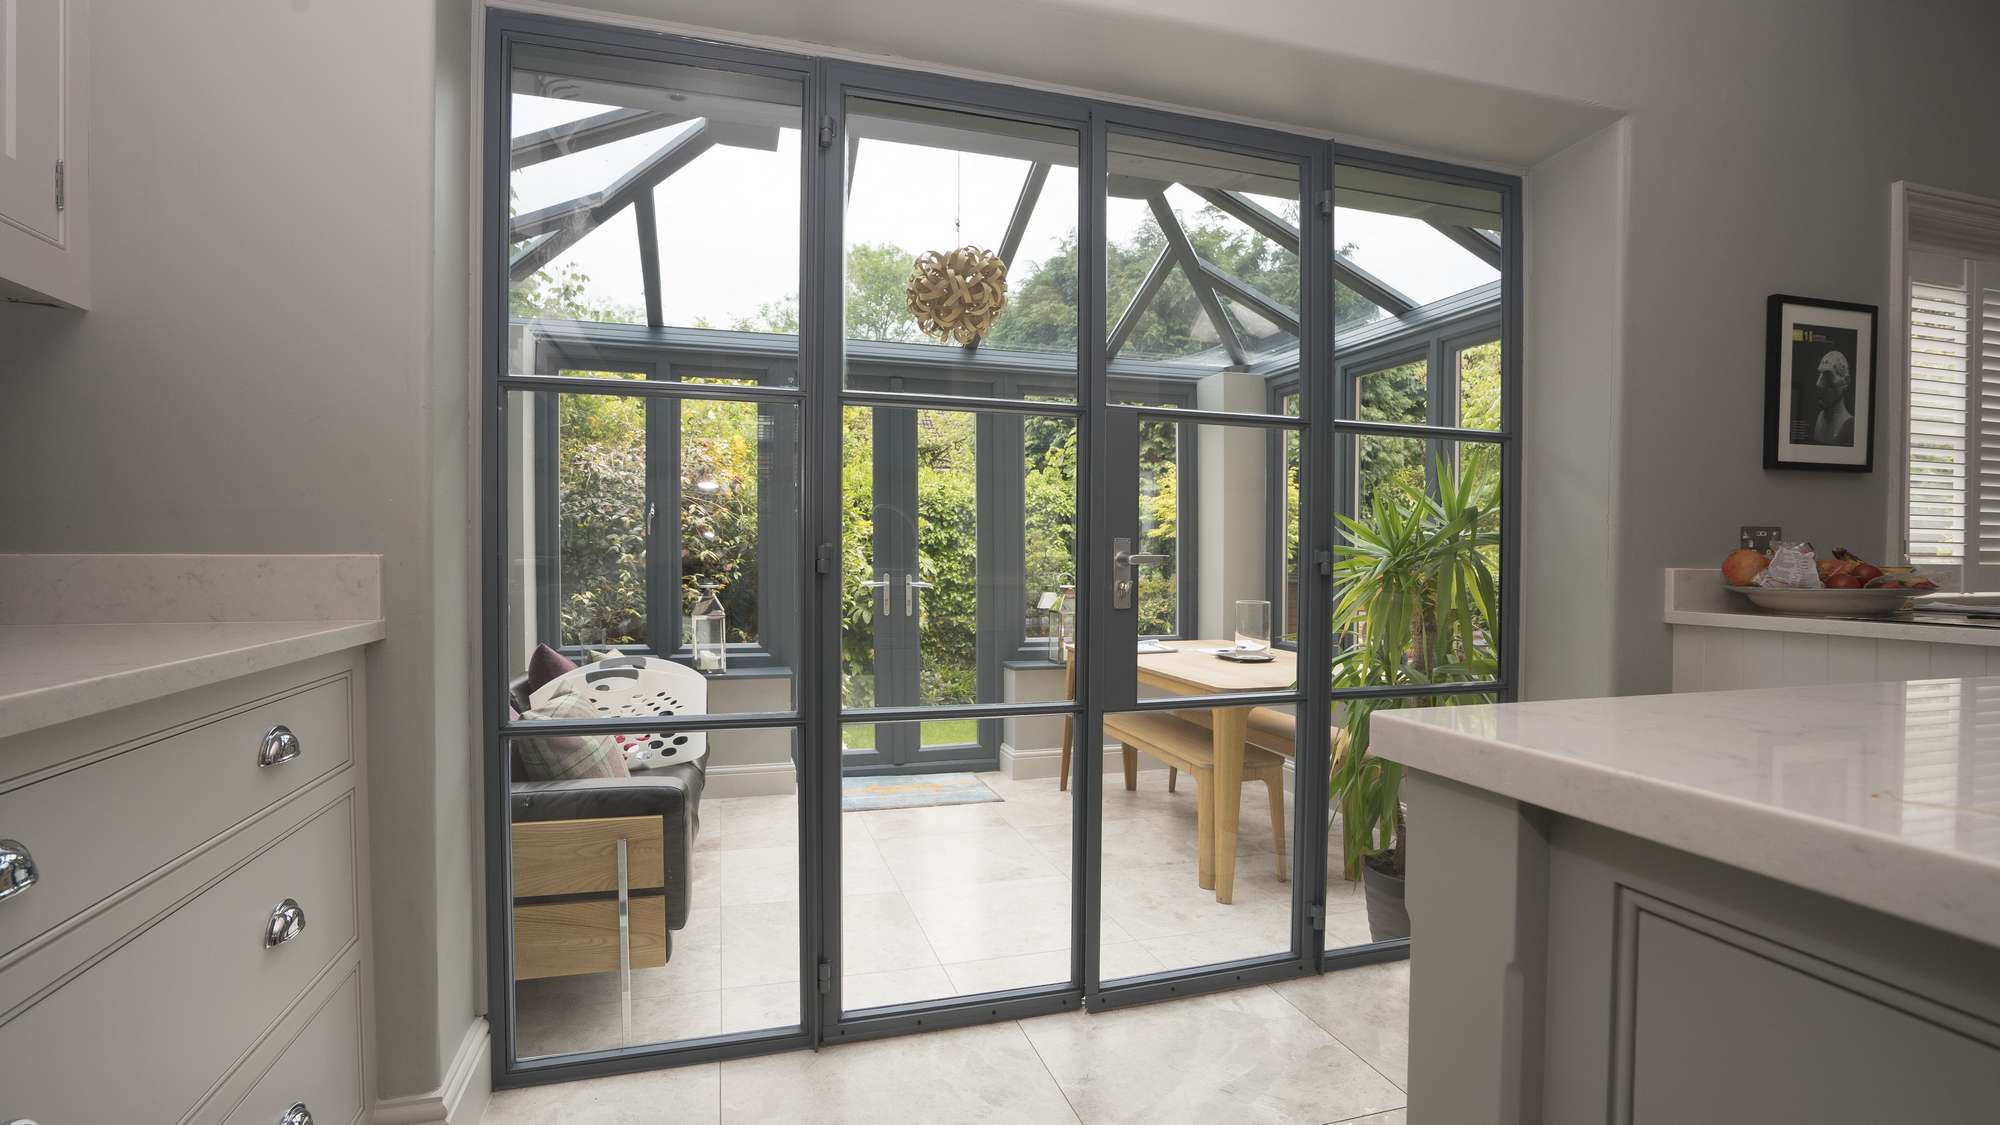 Internal view of the Crittall screen featuring a set of french doors and side lights. & Crittall Screen Manchester | John Knight Glass